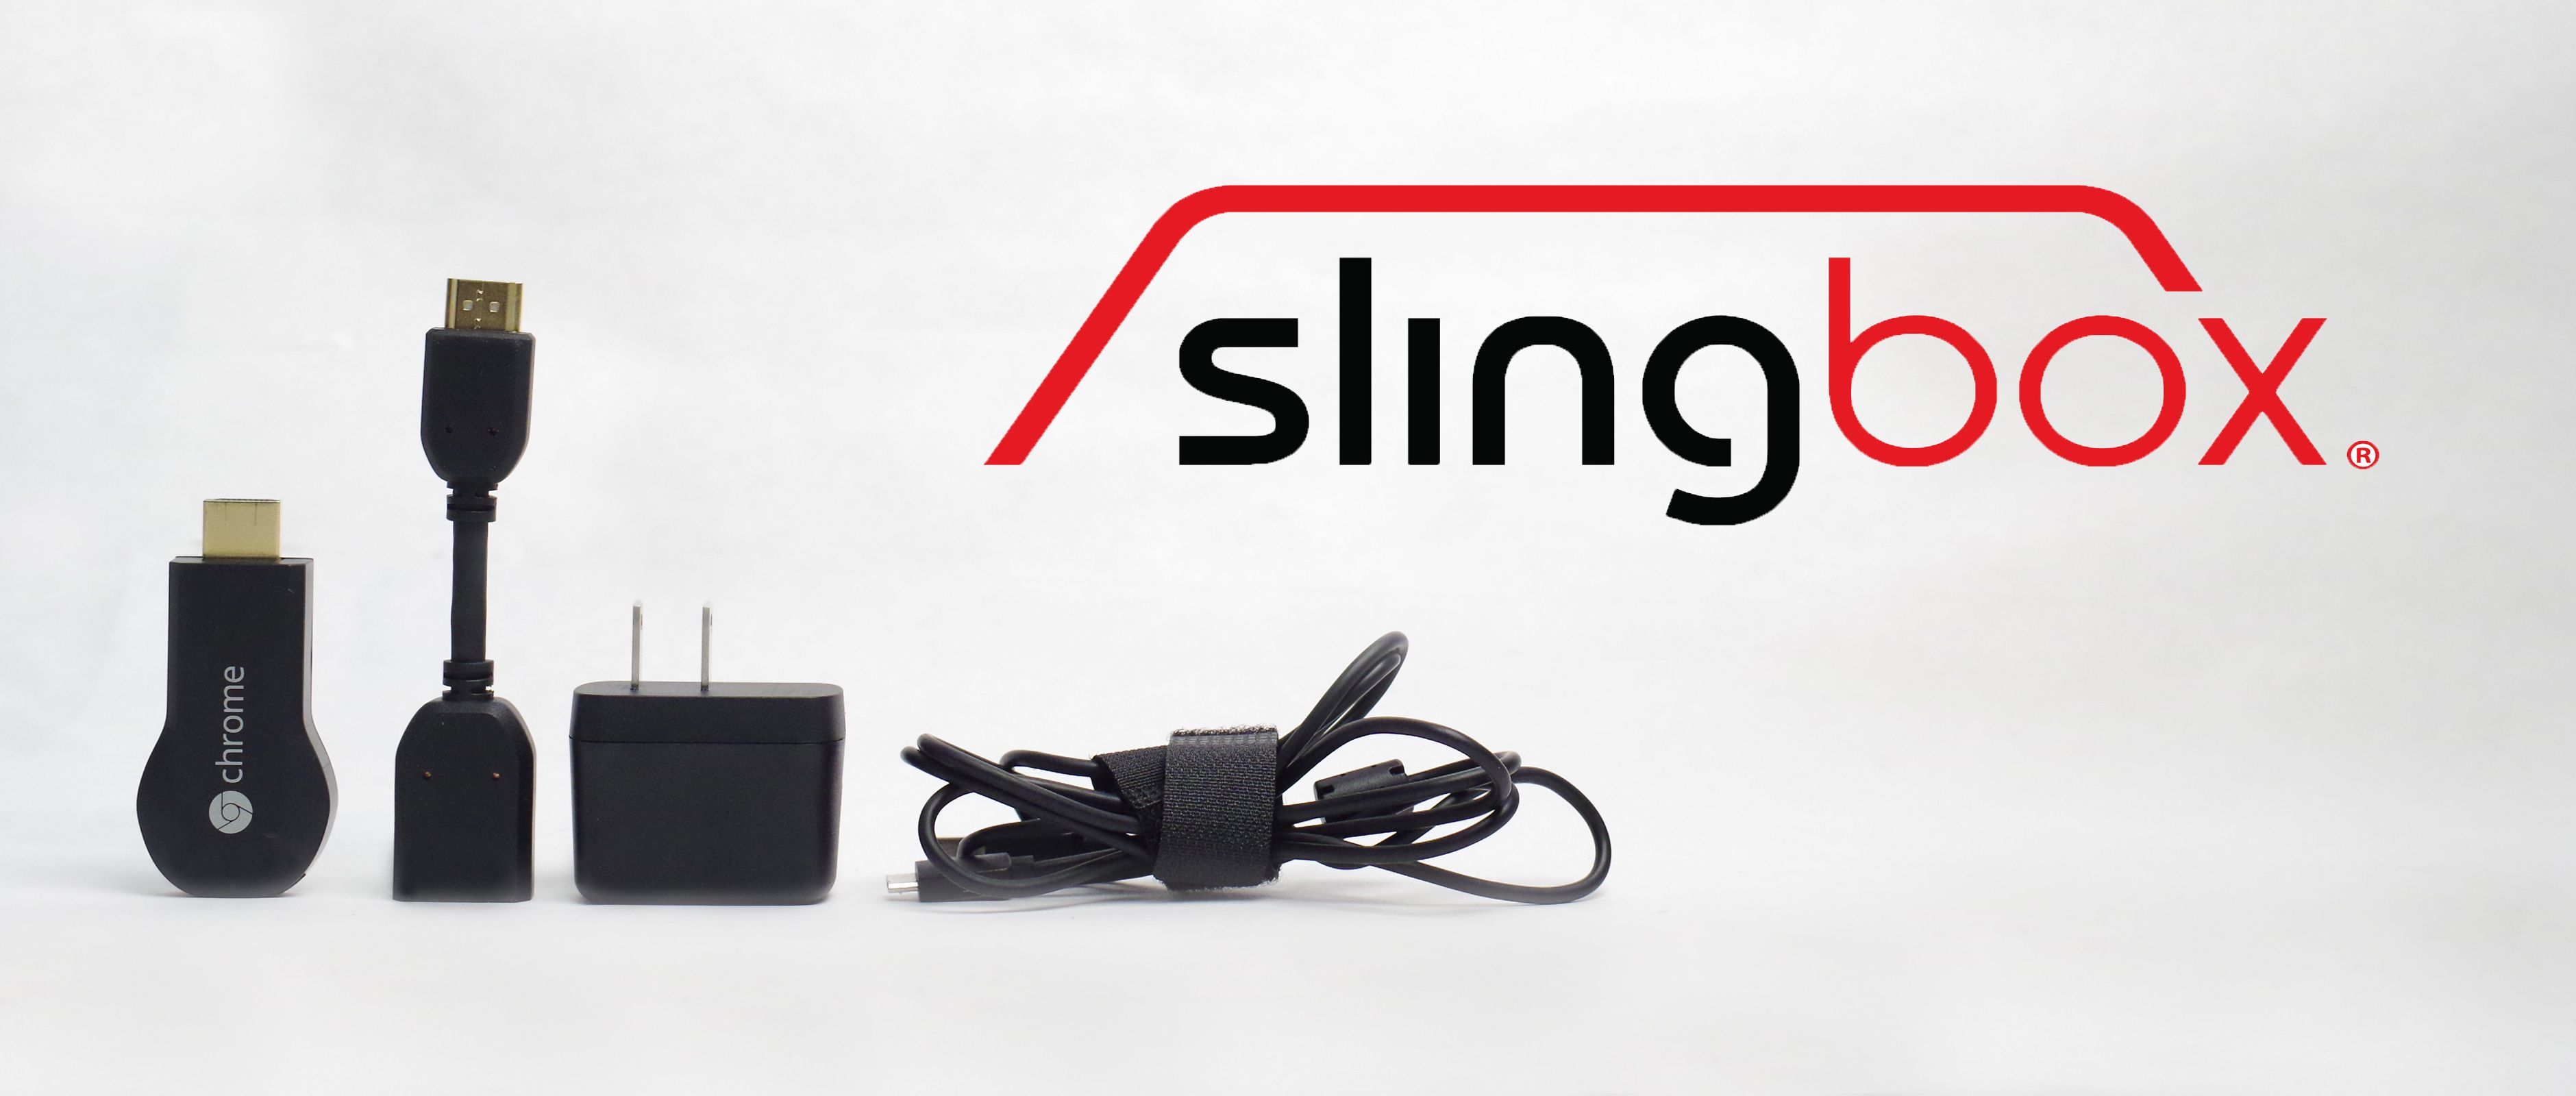 slingbox Android apps, Company logo, Iphone